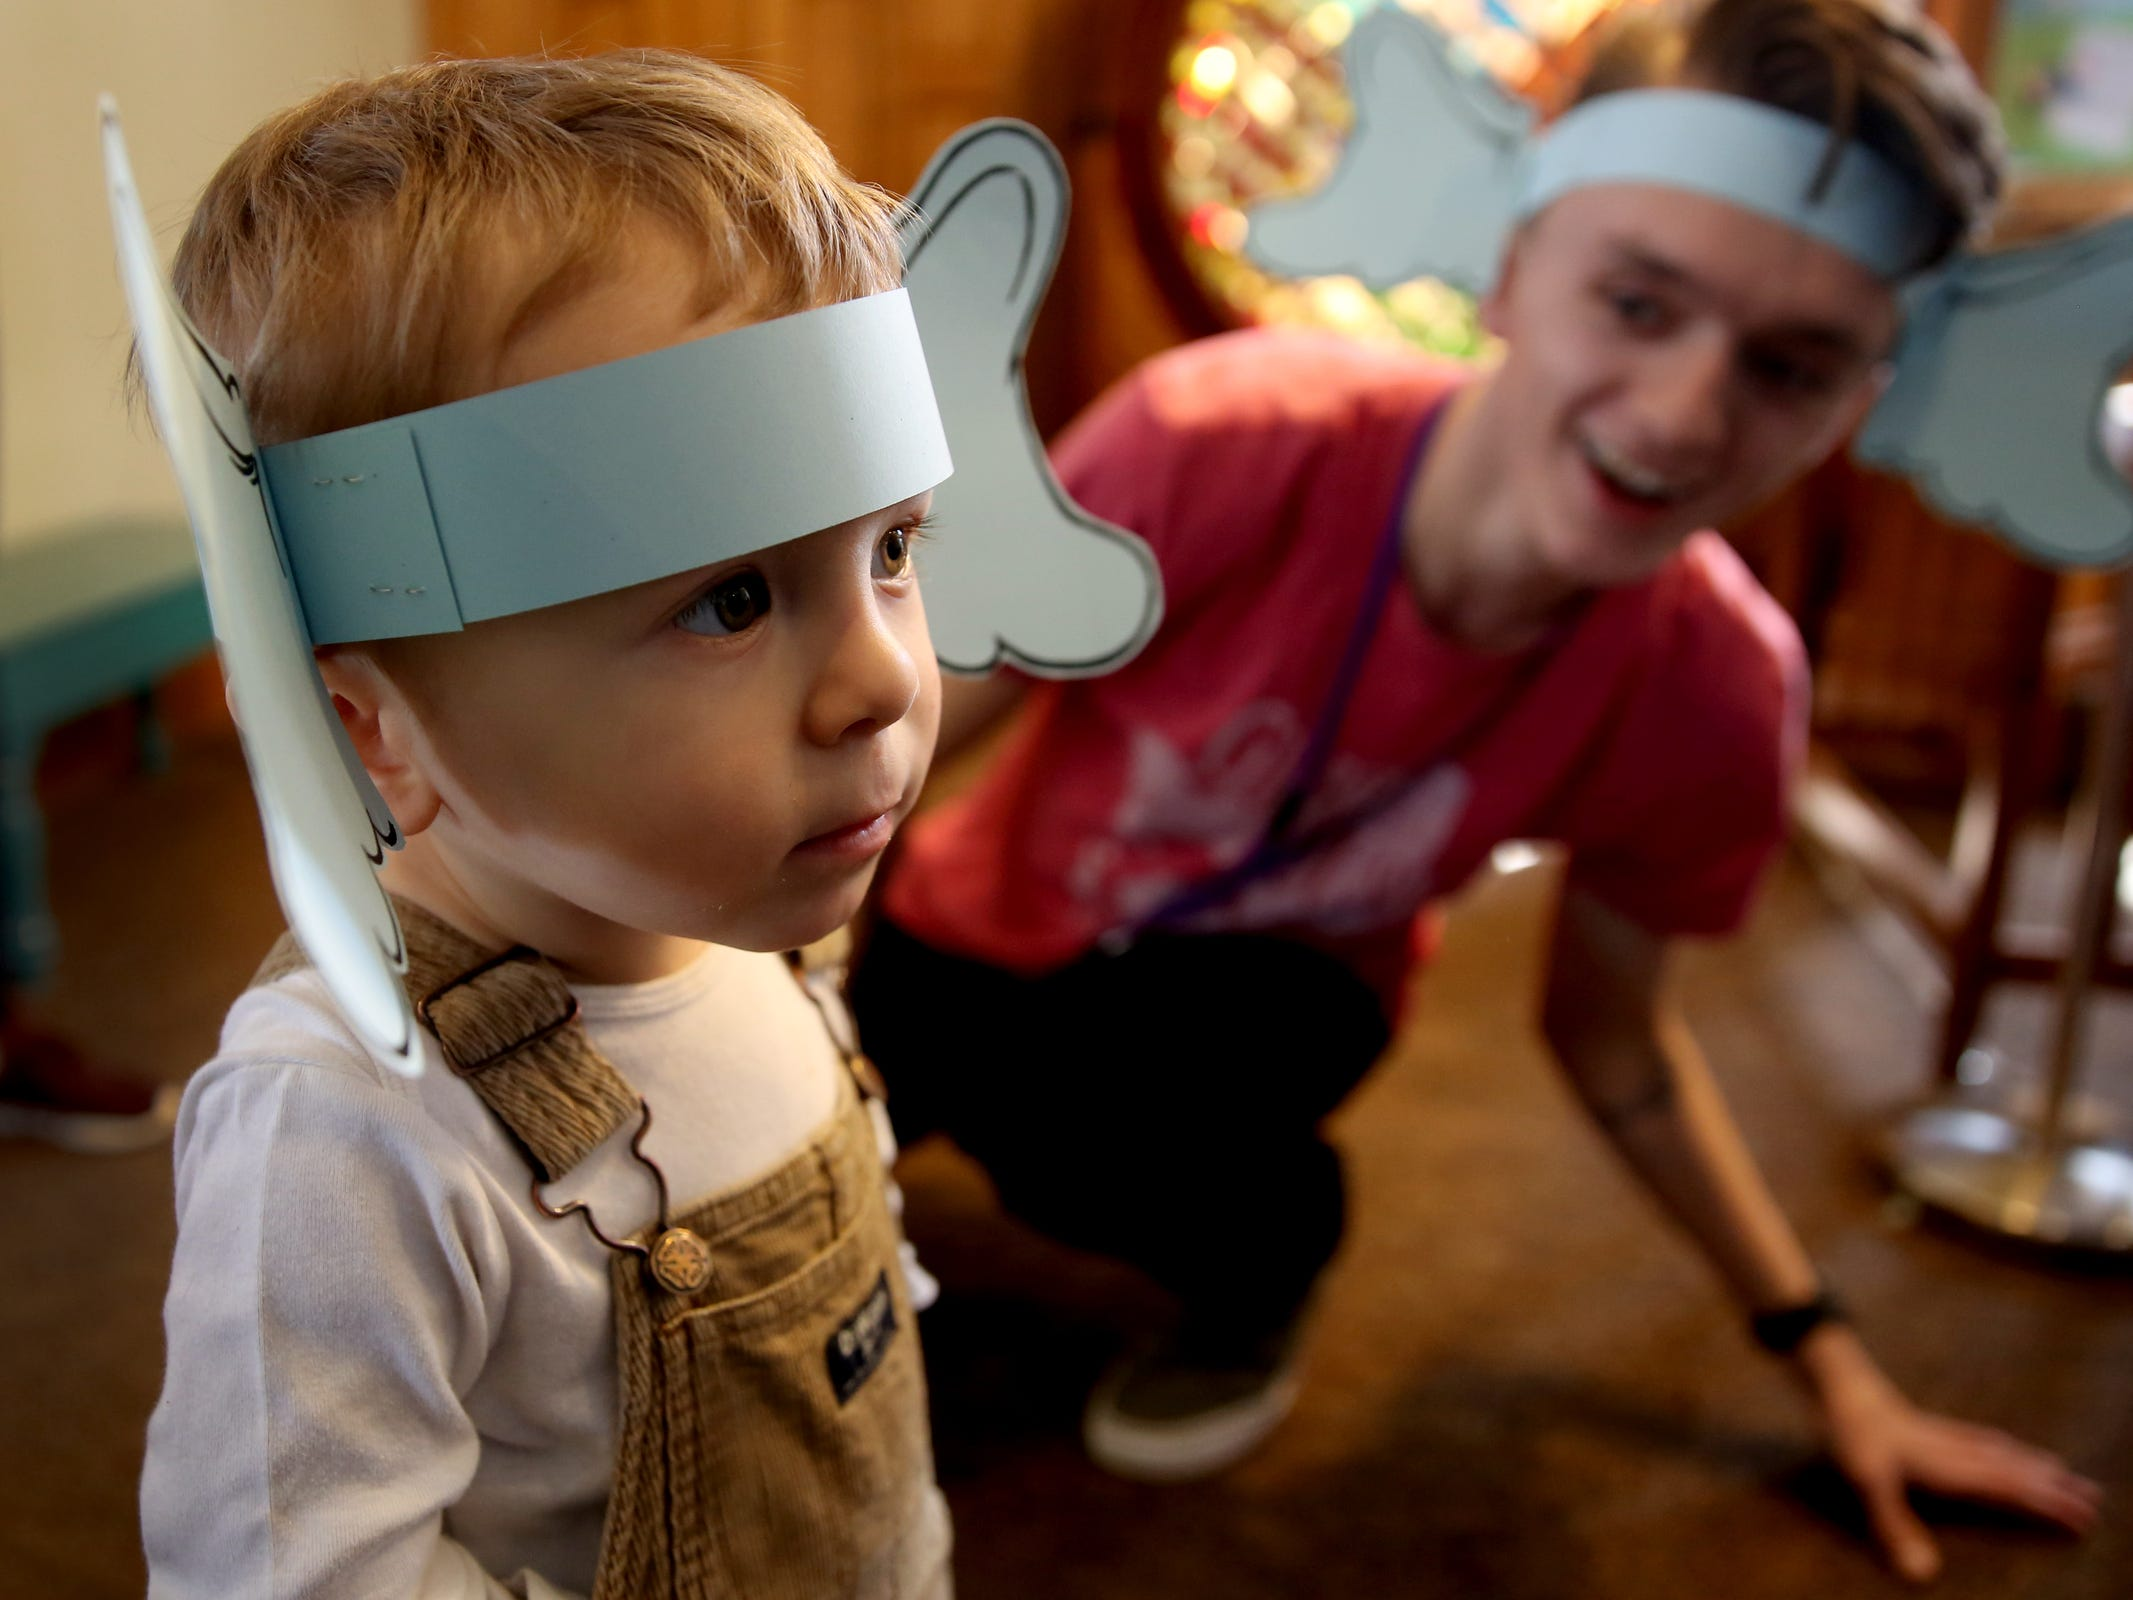 """Jules Prickett, 2, of Salem, wears ears like Horton from """"Horton Hears a Who"""" as part of a National Read Across America Day activity in honor of Dr. Seuss' birthday at Gilbert House Children's Museum in Salem  on Friday, March 1, 2019."""